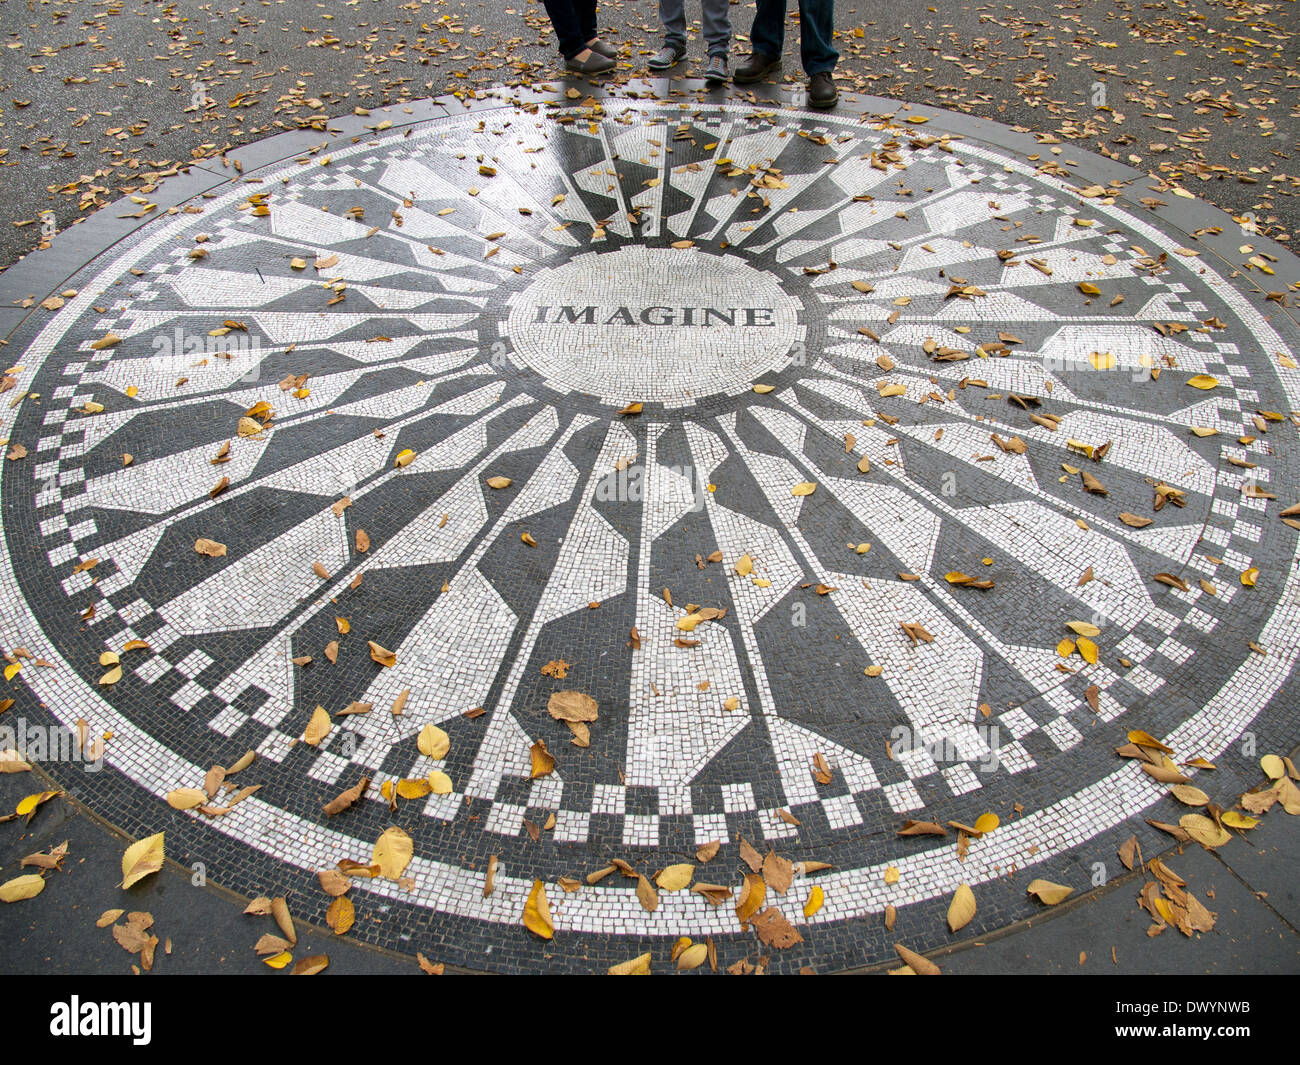 Memorial to John Lennon in Strawberry Fields in Fall, Central Park New York USA - Stock Image